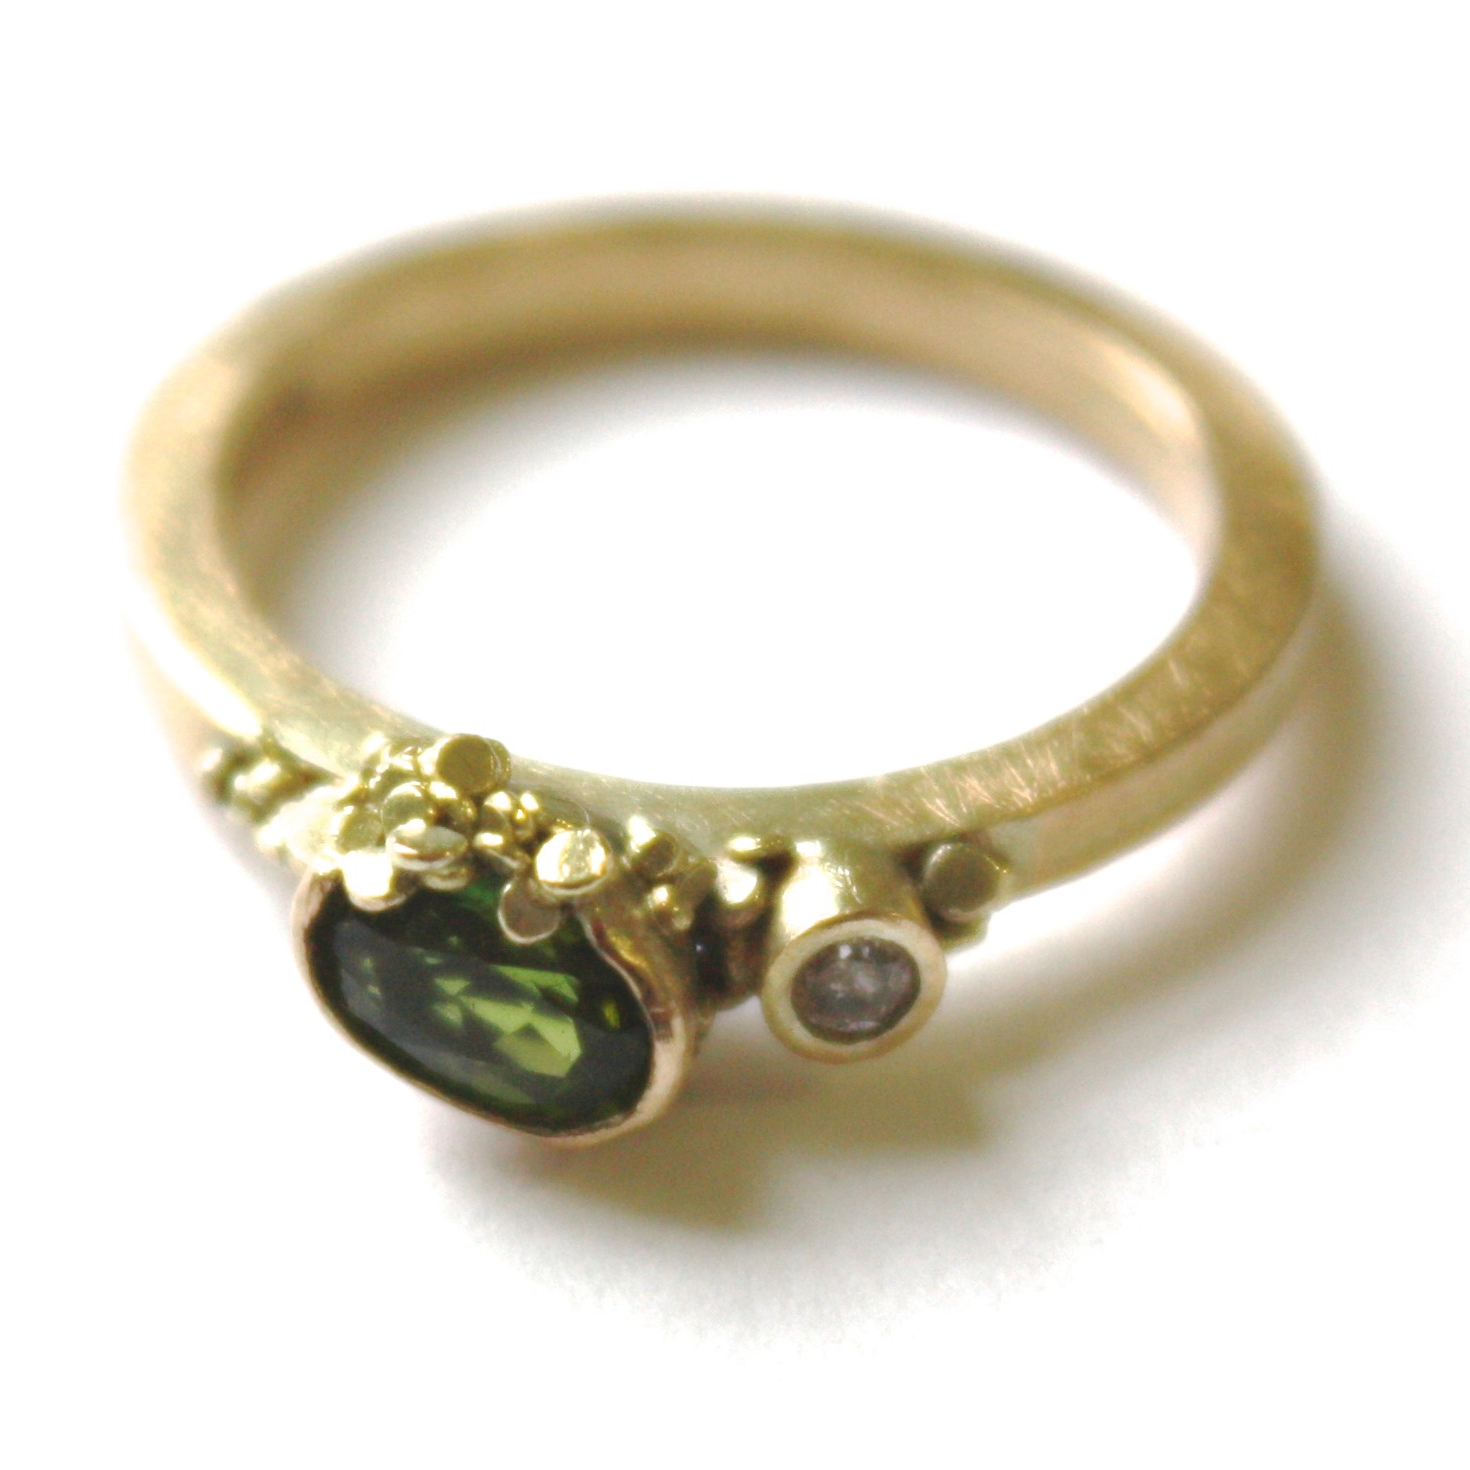 Speckle Ring  9ct yellow gold, green tourmaline and speckled grey diamond make this ring one of a kind. Sat asymmetric with clusters of speckles its unique.